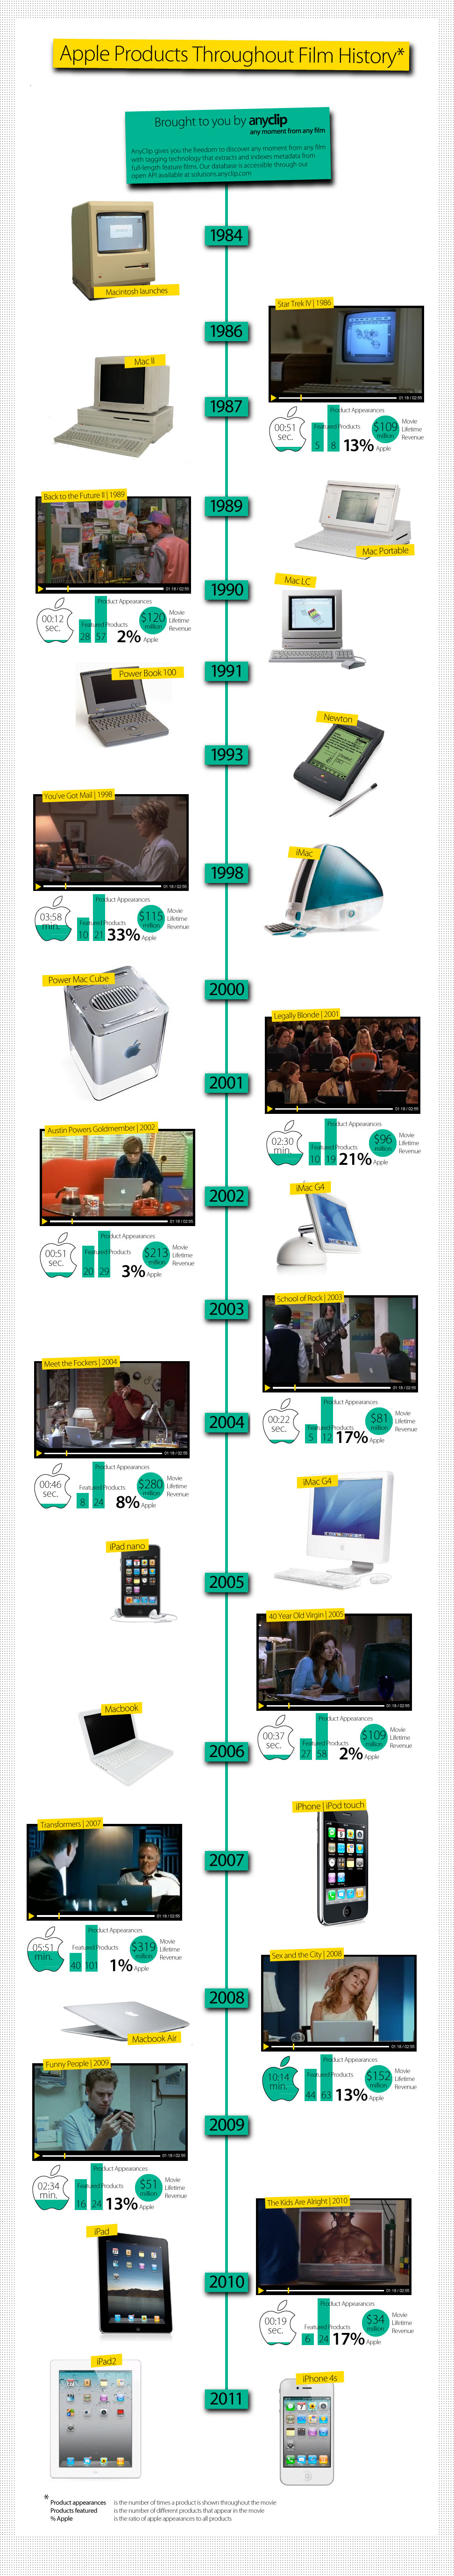 Apple Movie Product Placement Infographic